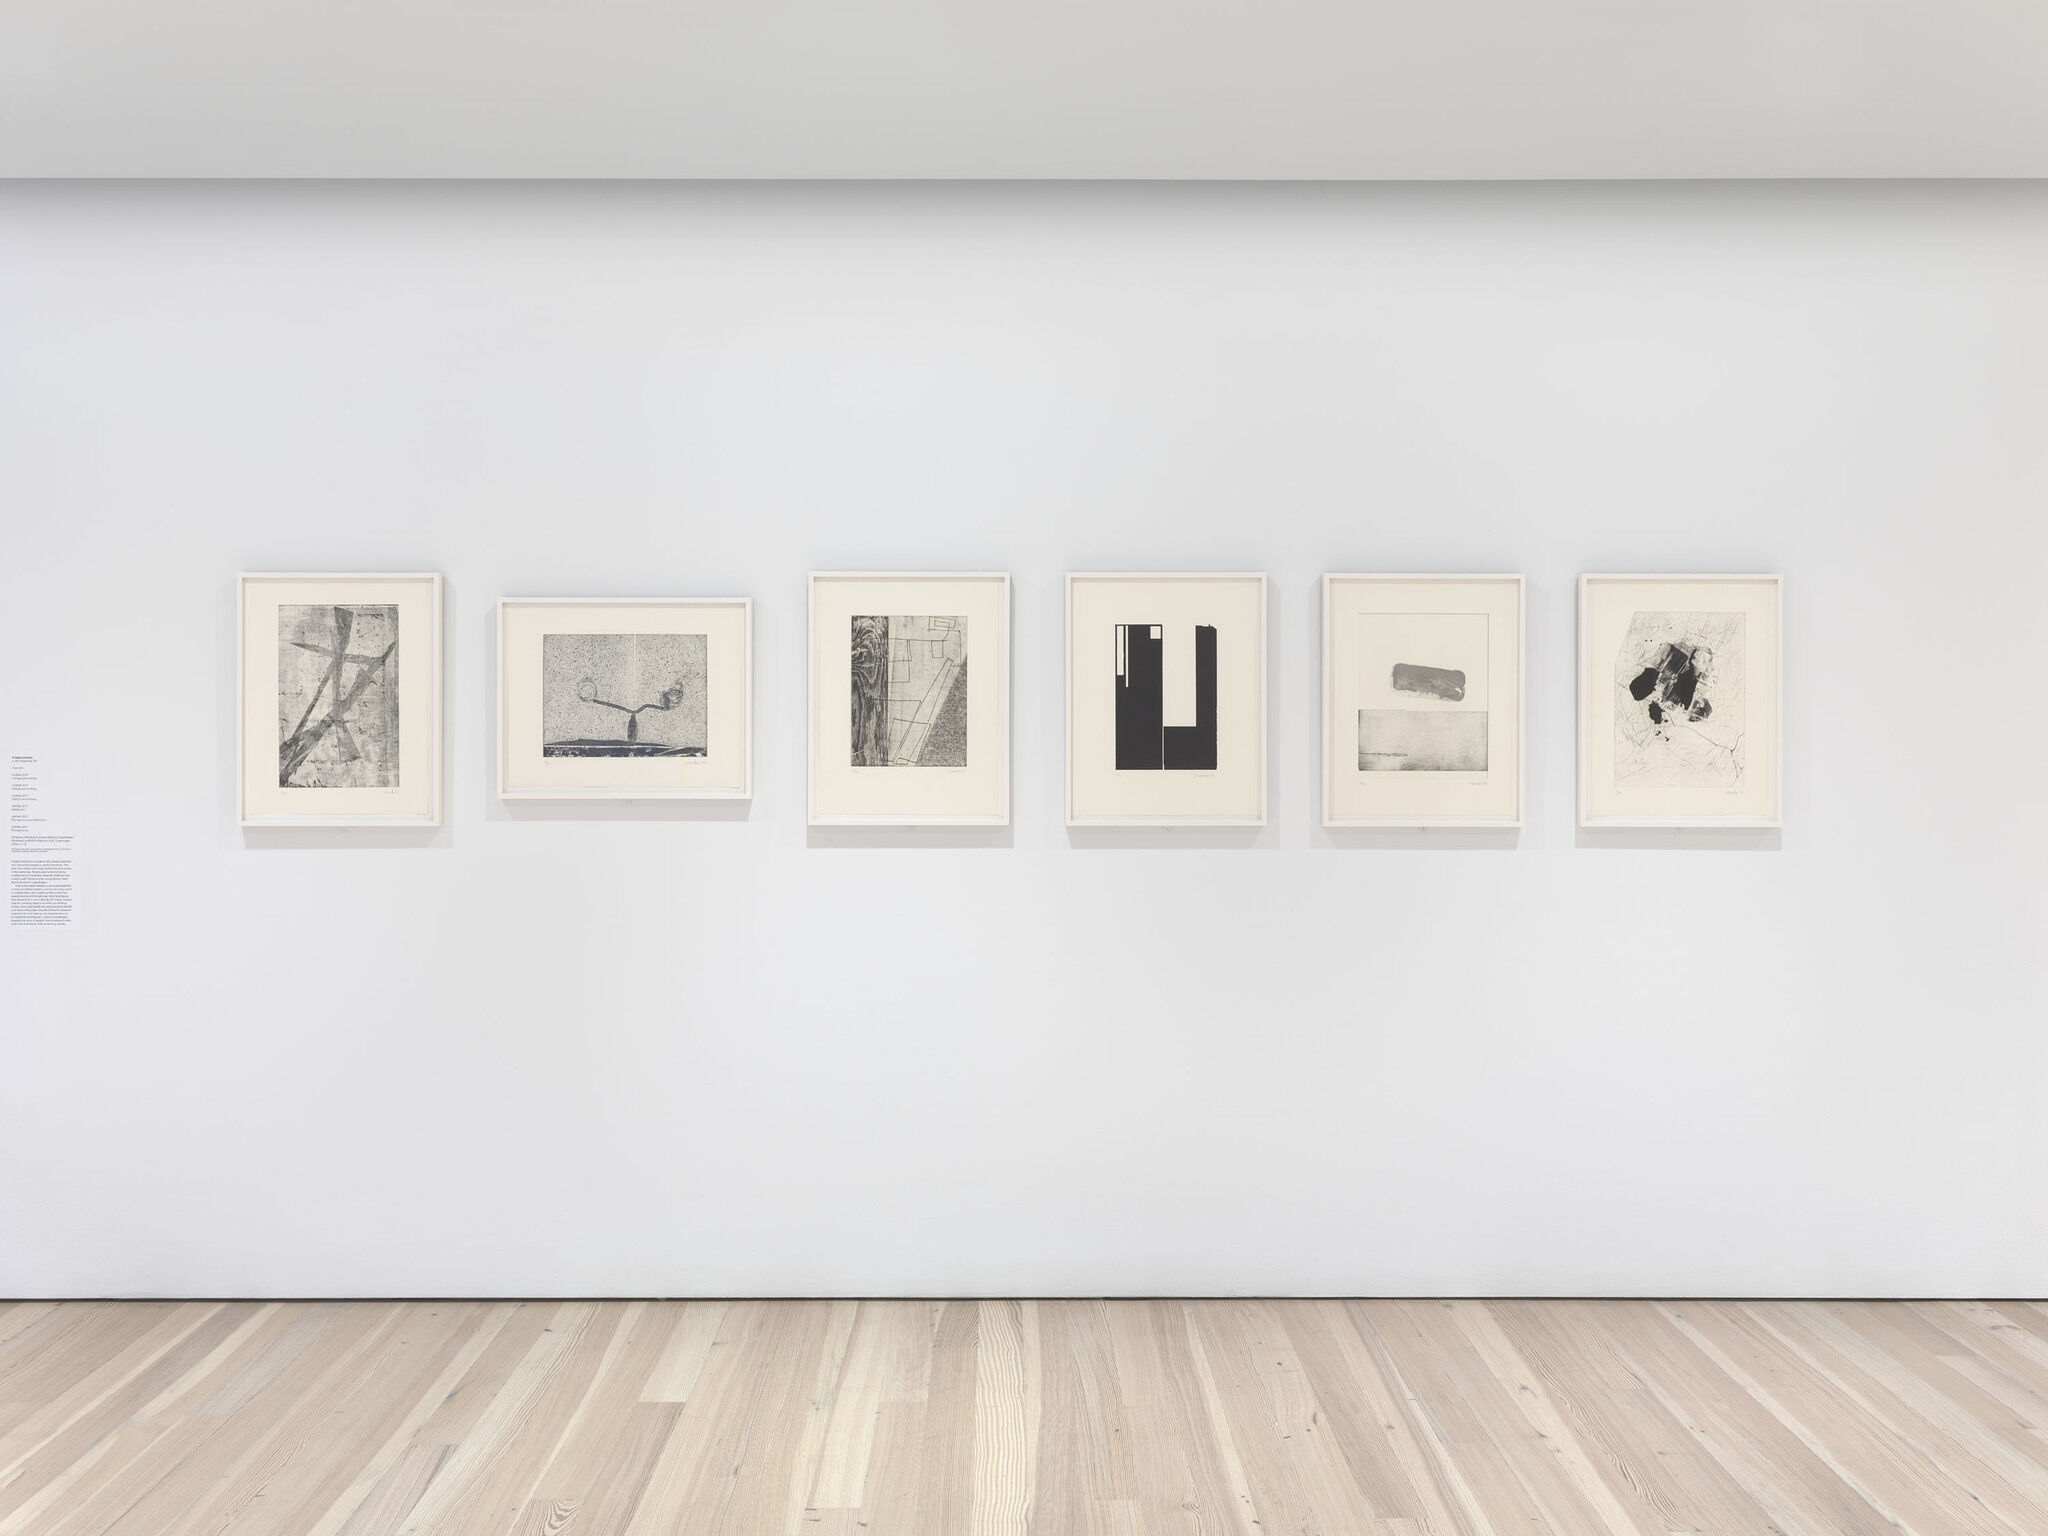 Six works of art displayed in a row on a white wall.